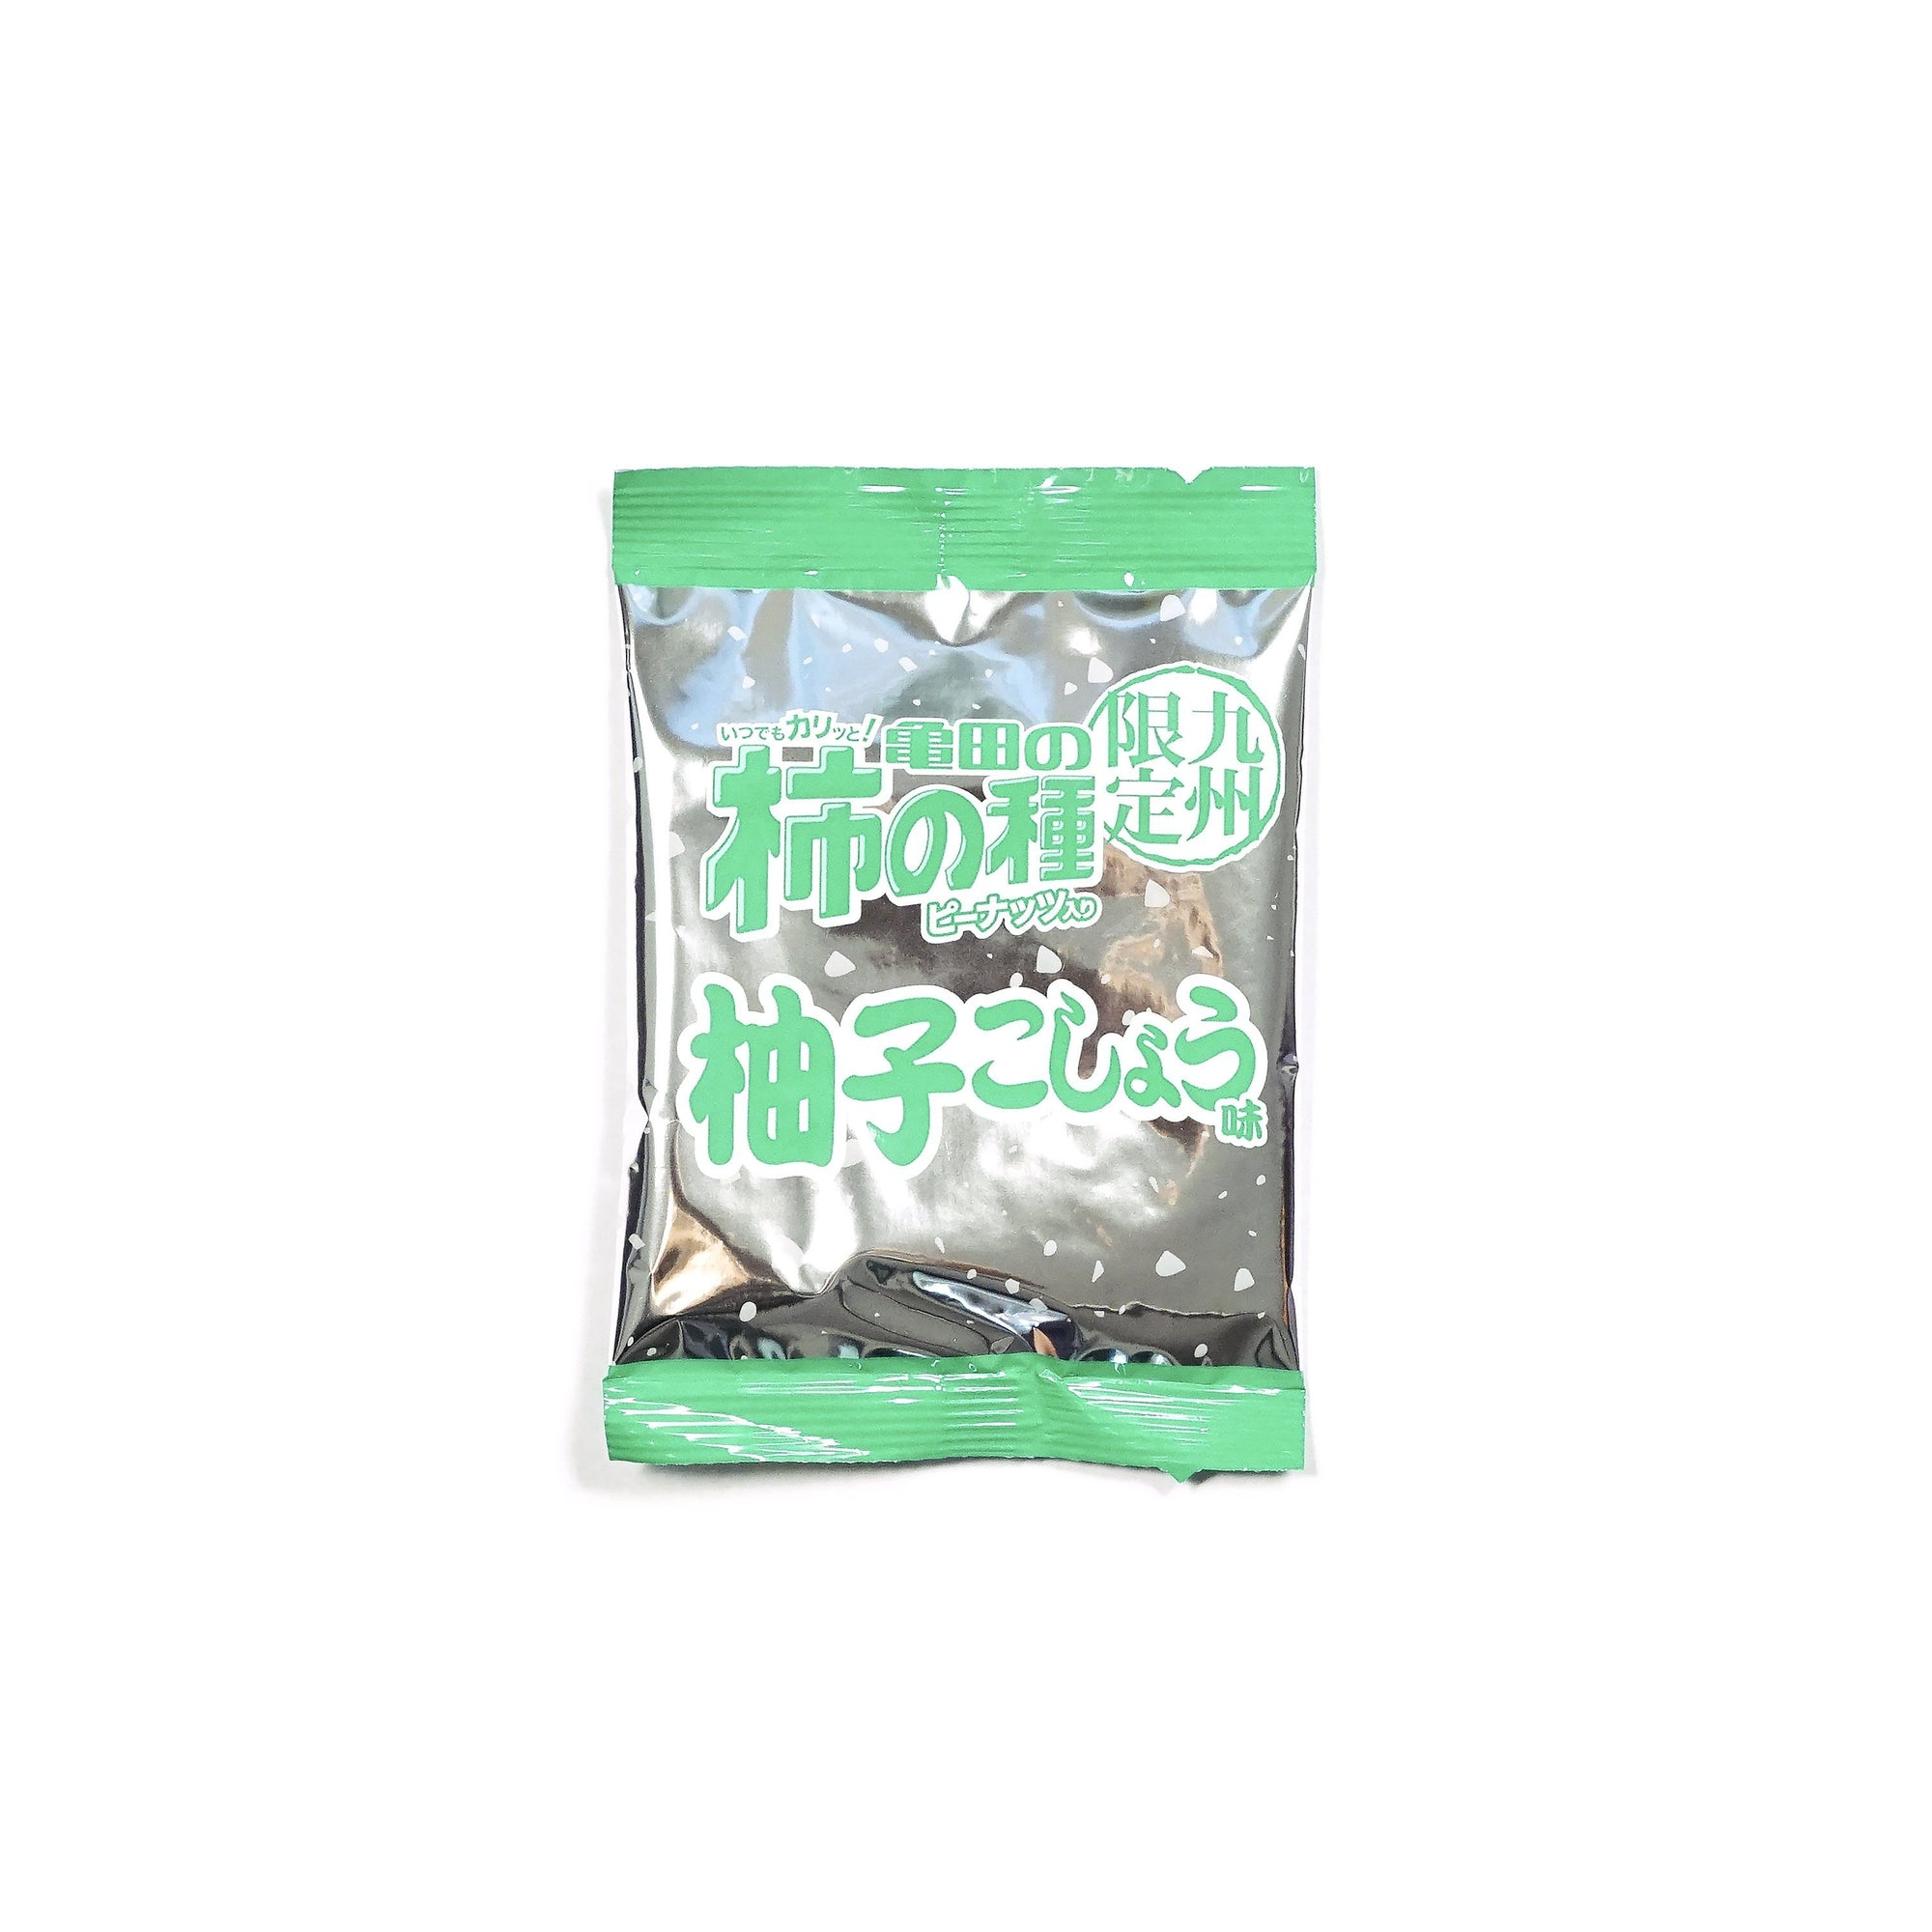 Past Snack - Kakinotane Yuzu Pepper (5 Packs)